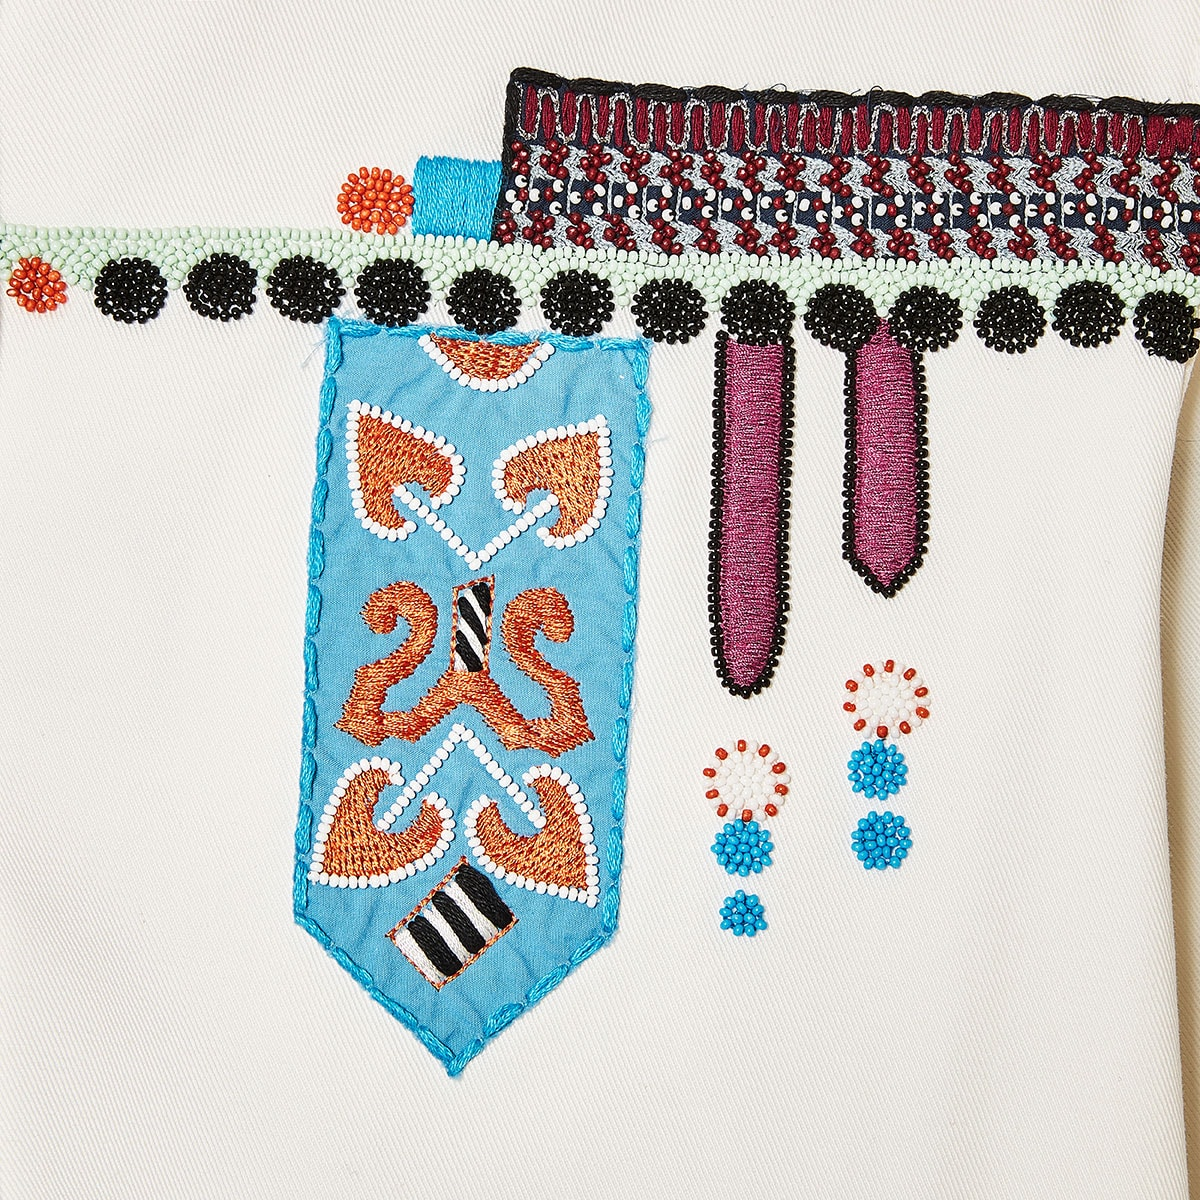 Embroidered overshirt with beads